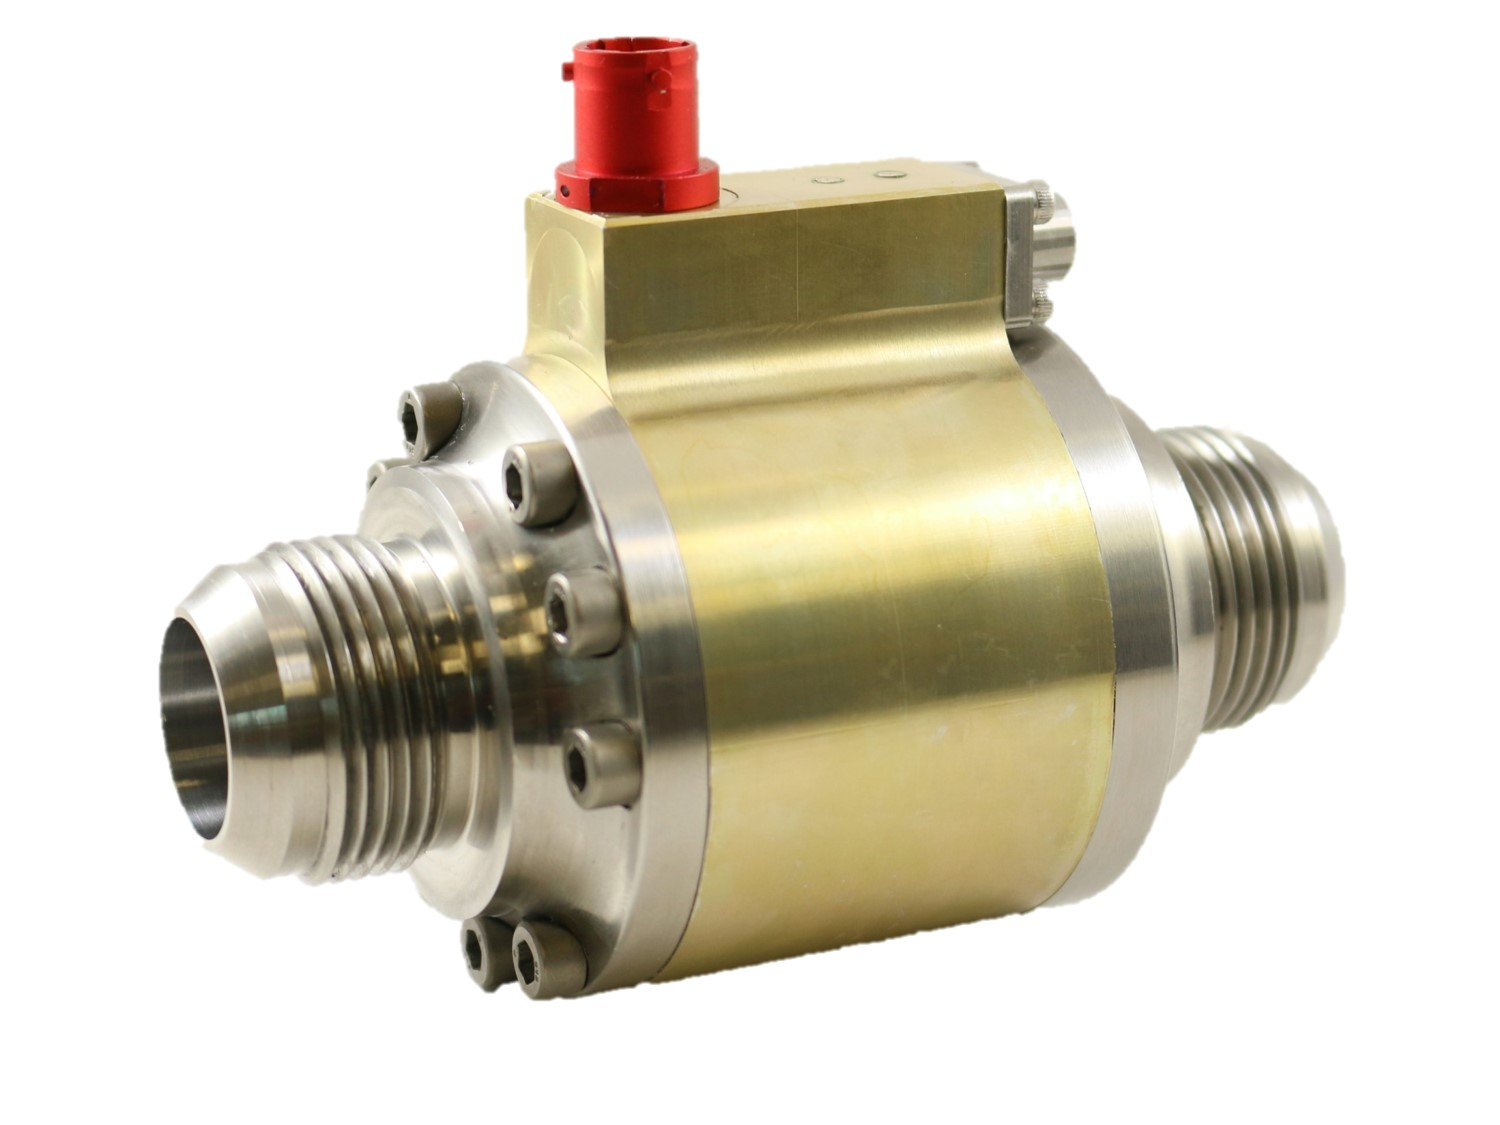 Triton Space Technologies TS-160Y Pyro Actuated Valve